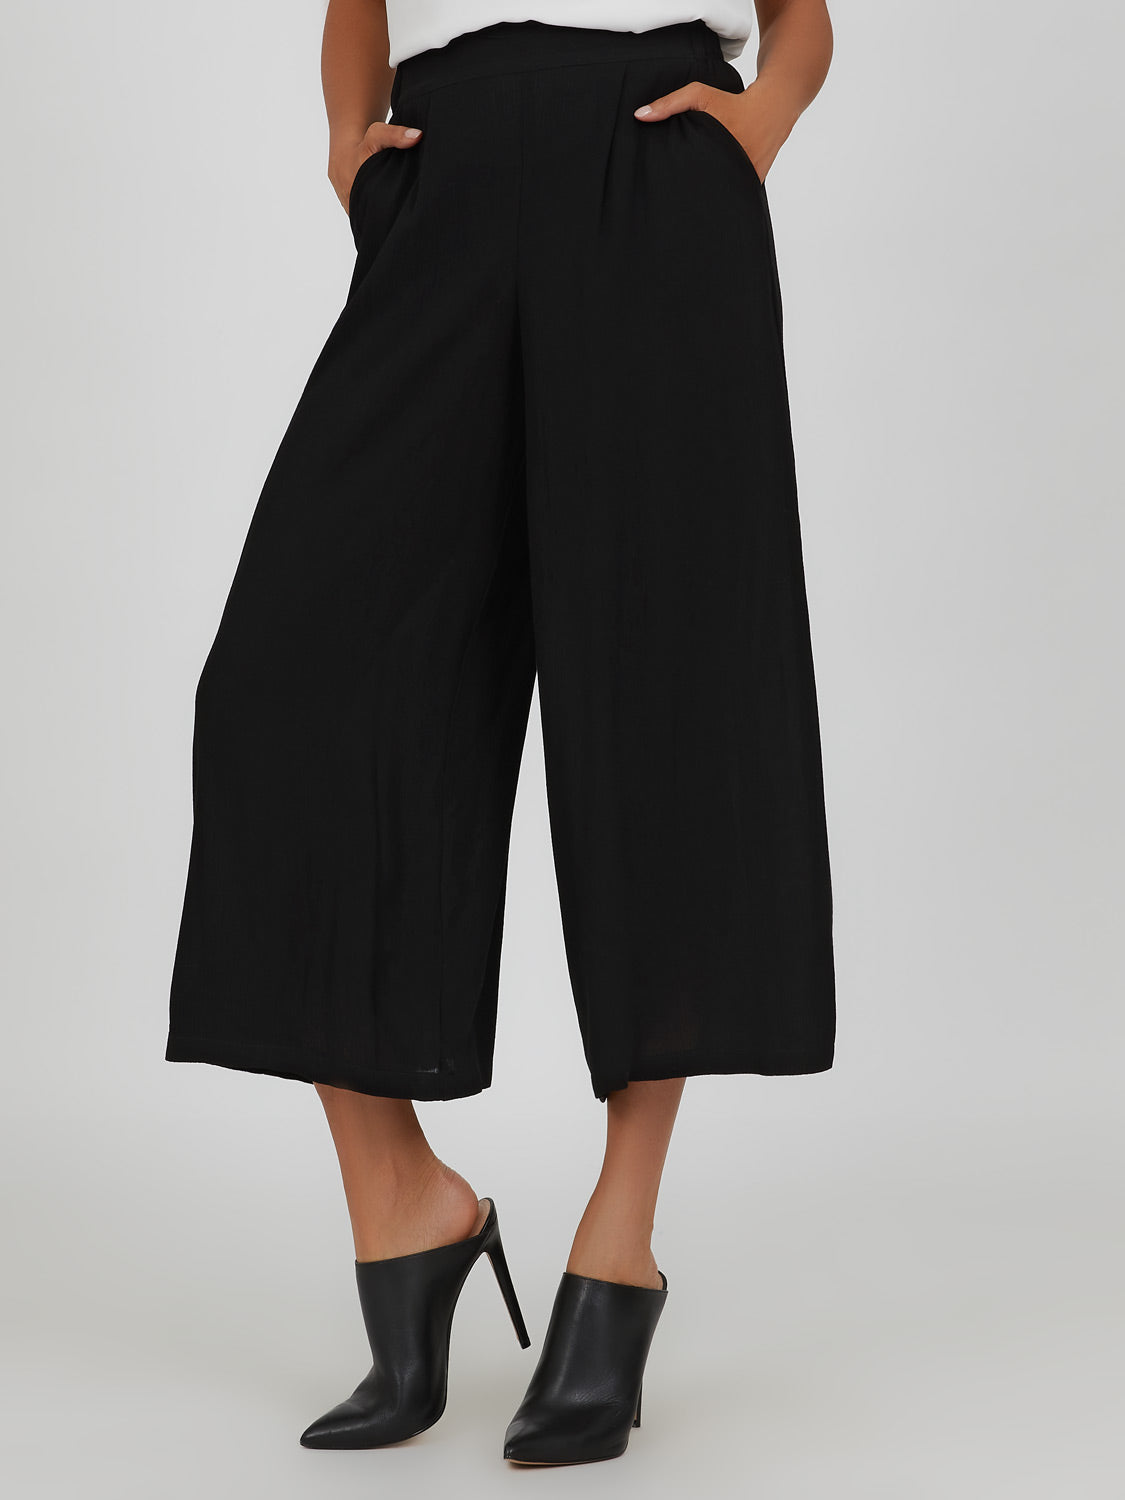 Pull-On Pleated Gaucho Pant